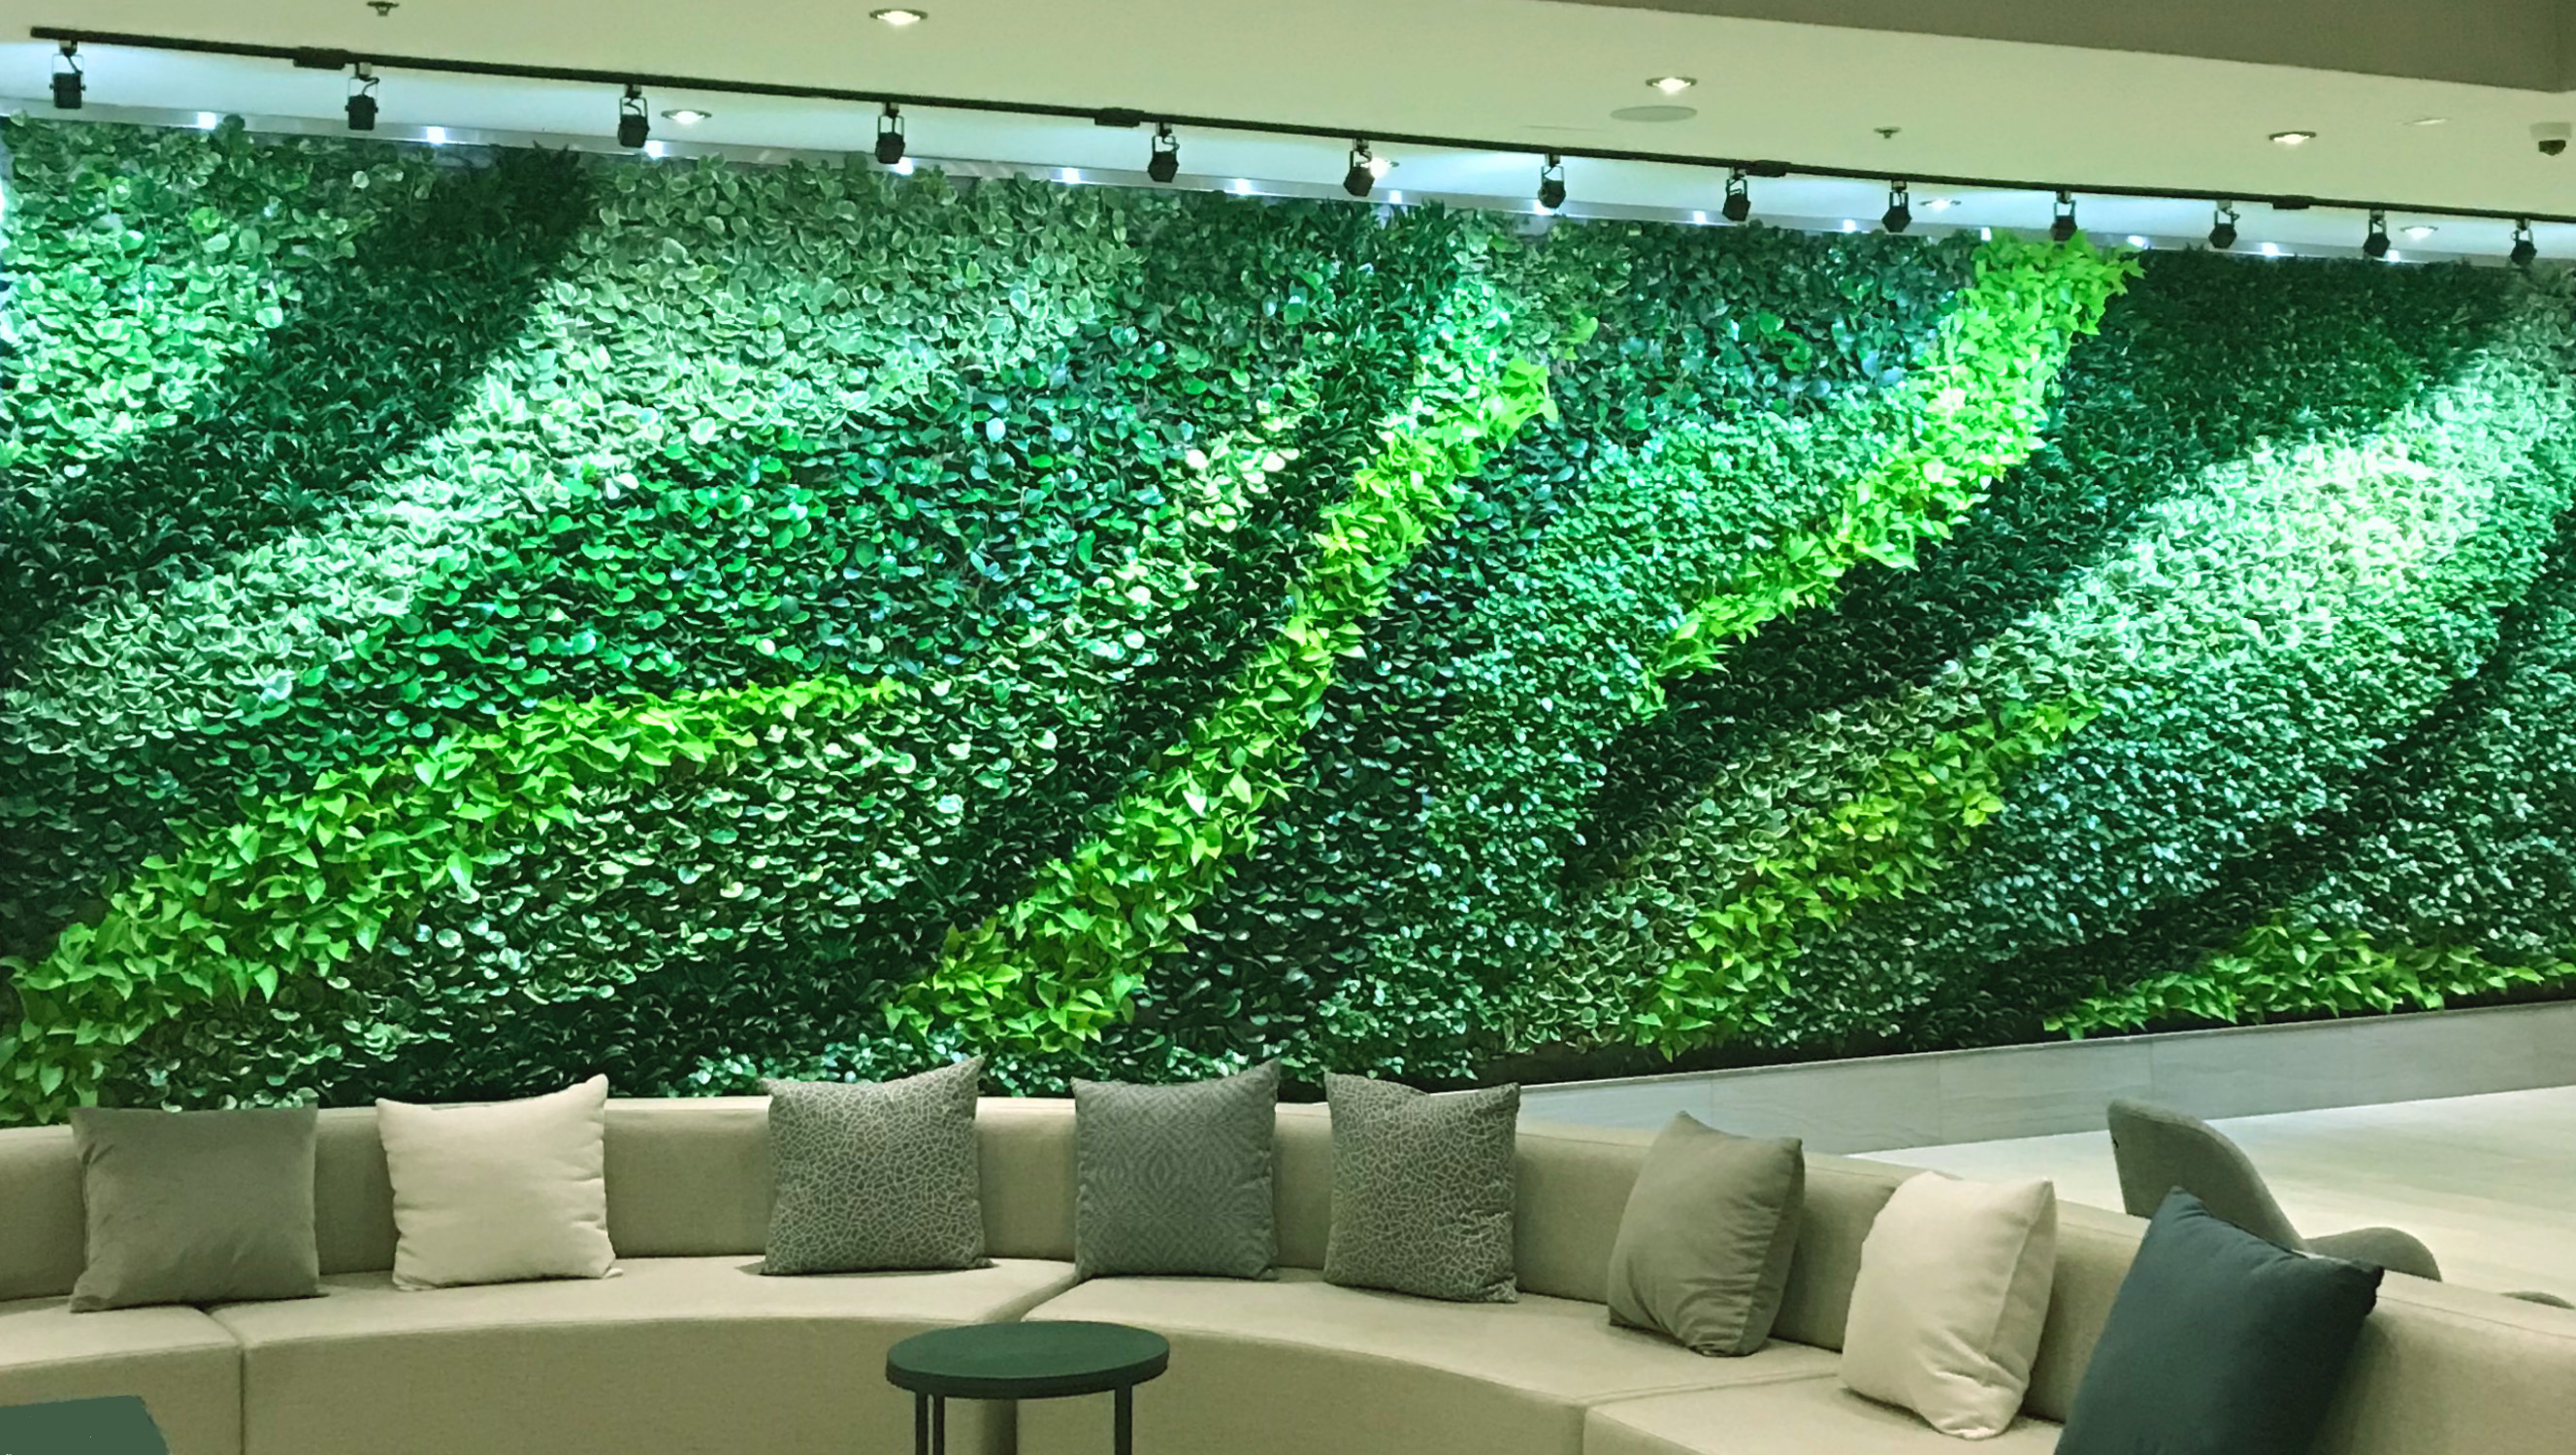 Living Wall Systems Canada | Vertical Oxygen